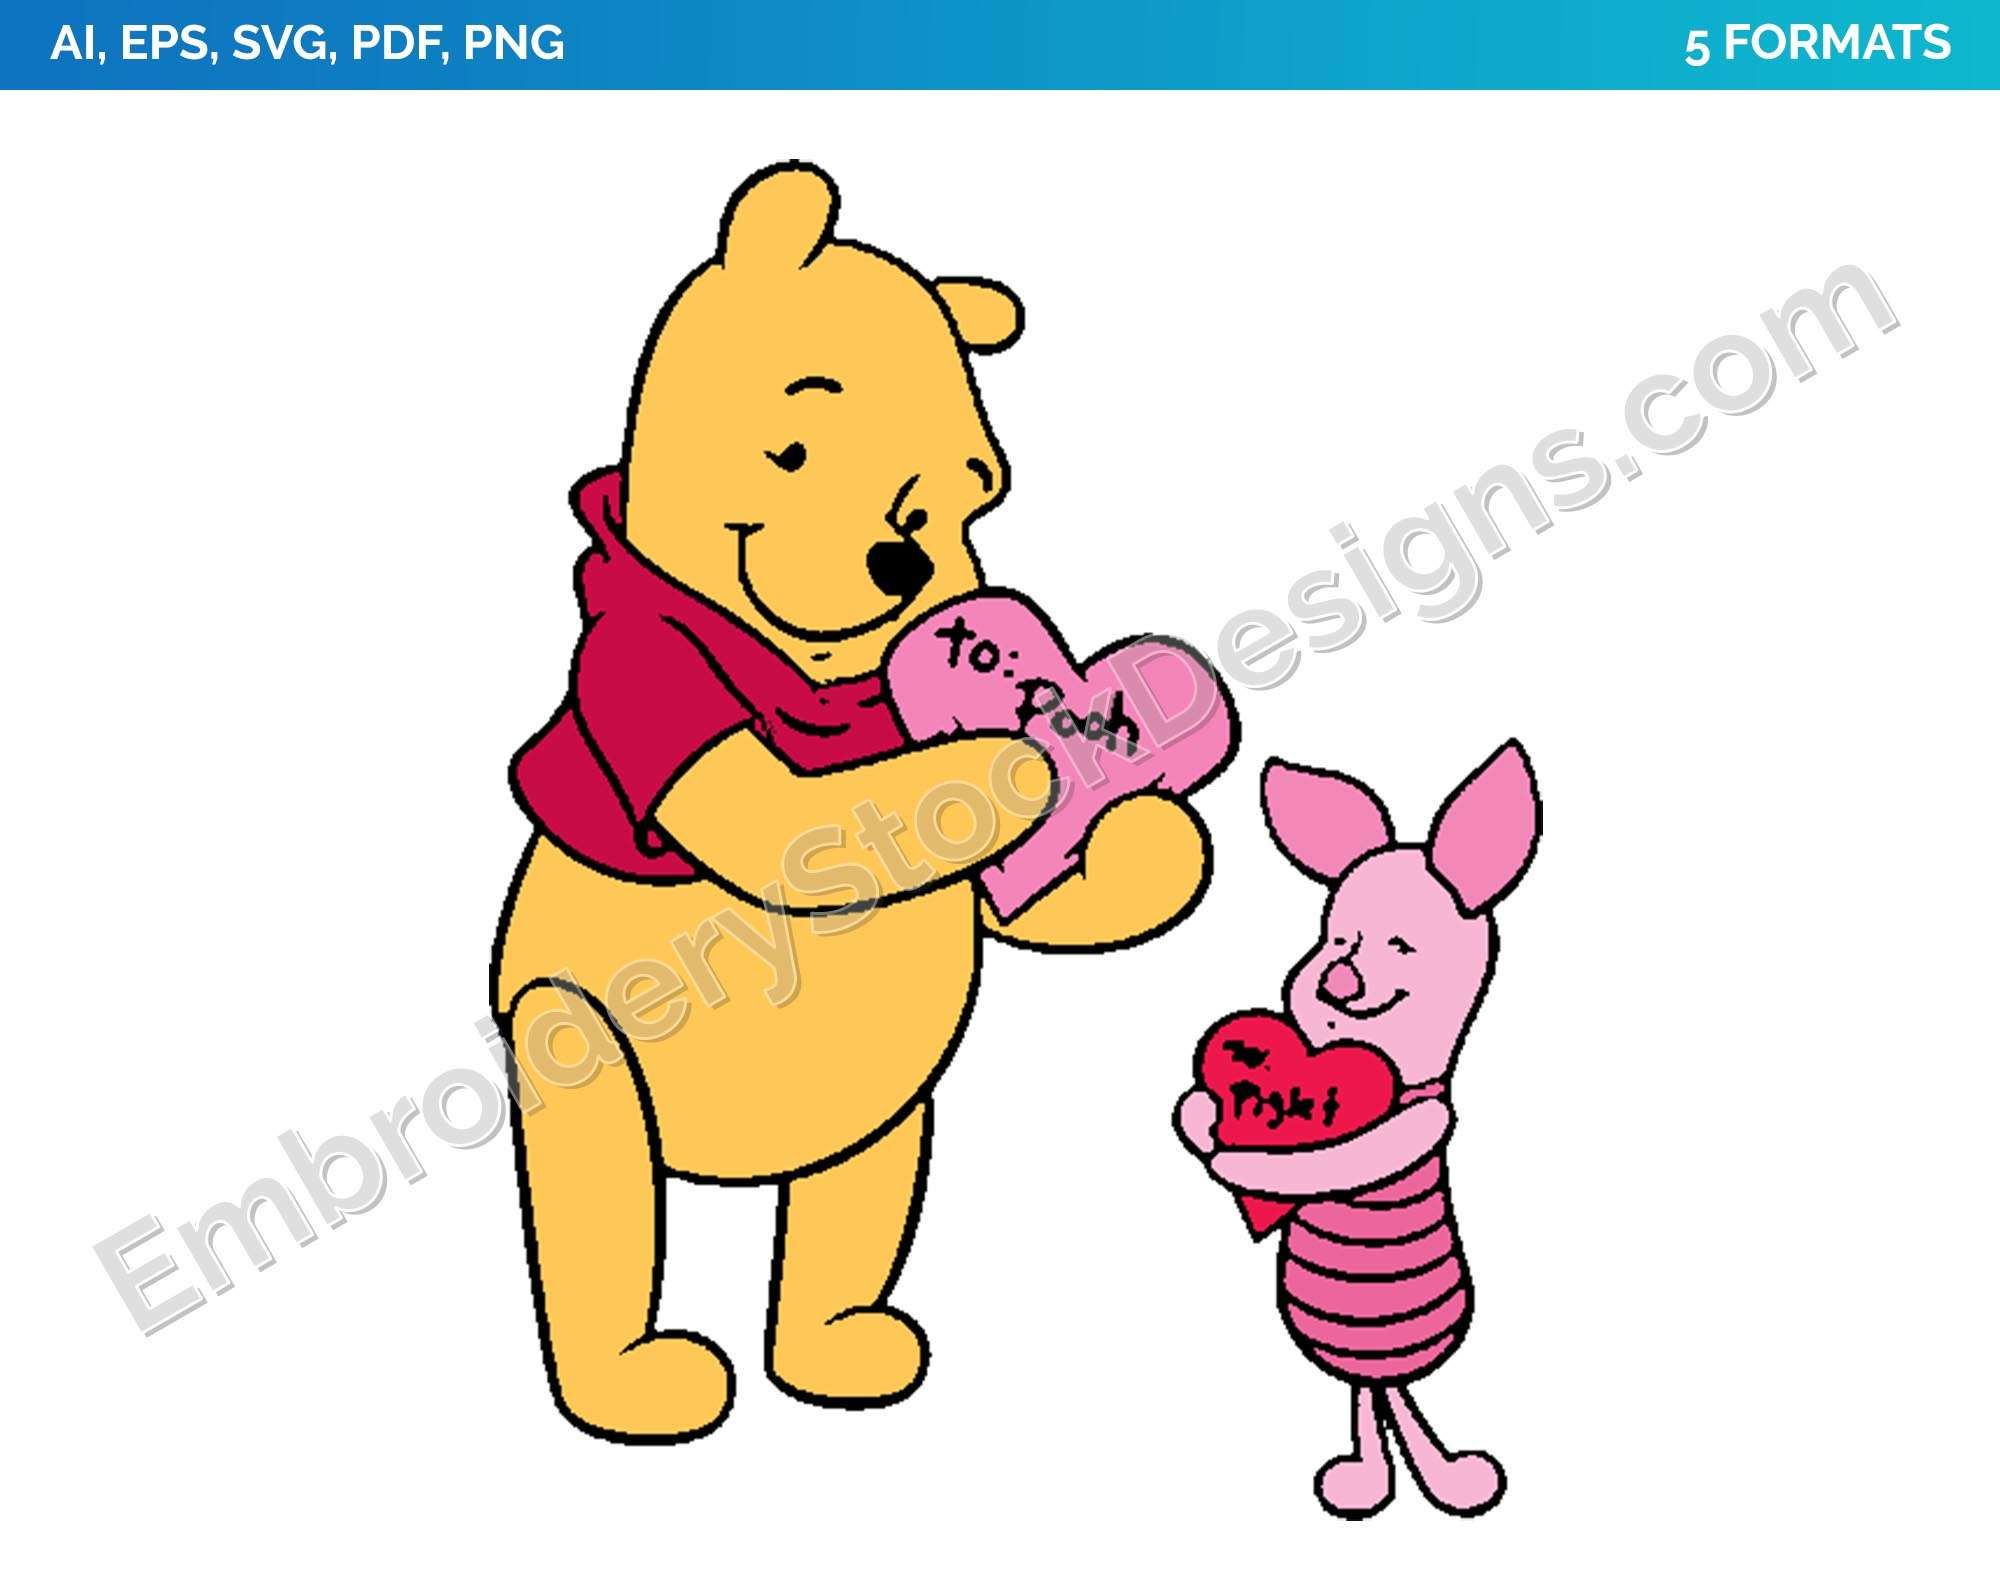 Winnie The Pooh Piglet Valentine Cards Valentine S Day Holiday Disney Character Designs As Svg Vector For Print In 5 Formats Dsnyh001175 World S Larges Character Design Cartoon Embroidery Disney Designs